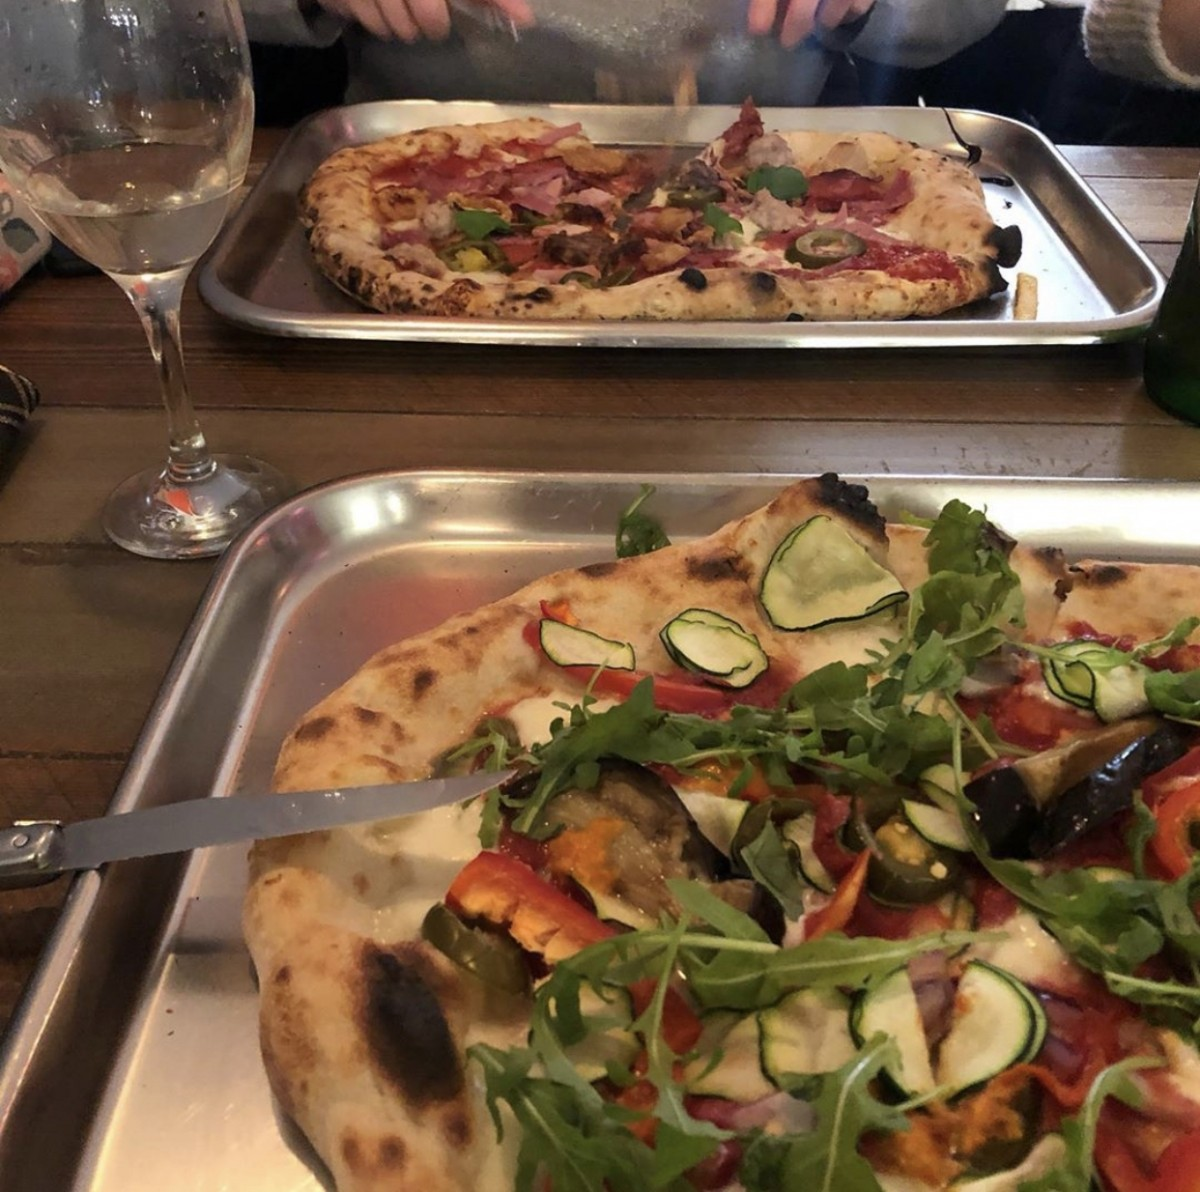 Established Neapolitan Wood-fired pizza, Prominent High St position, Fully equipped, Gozney oven - Image 3